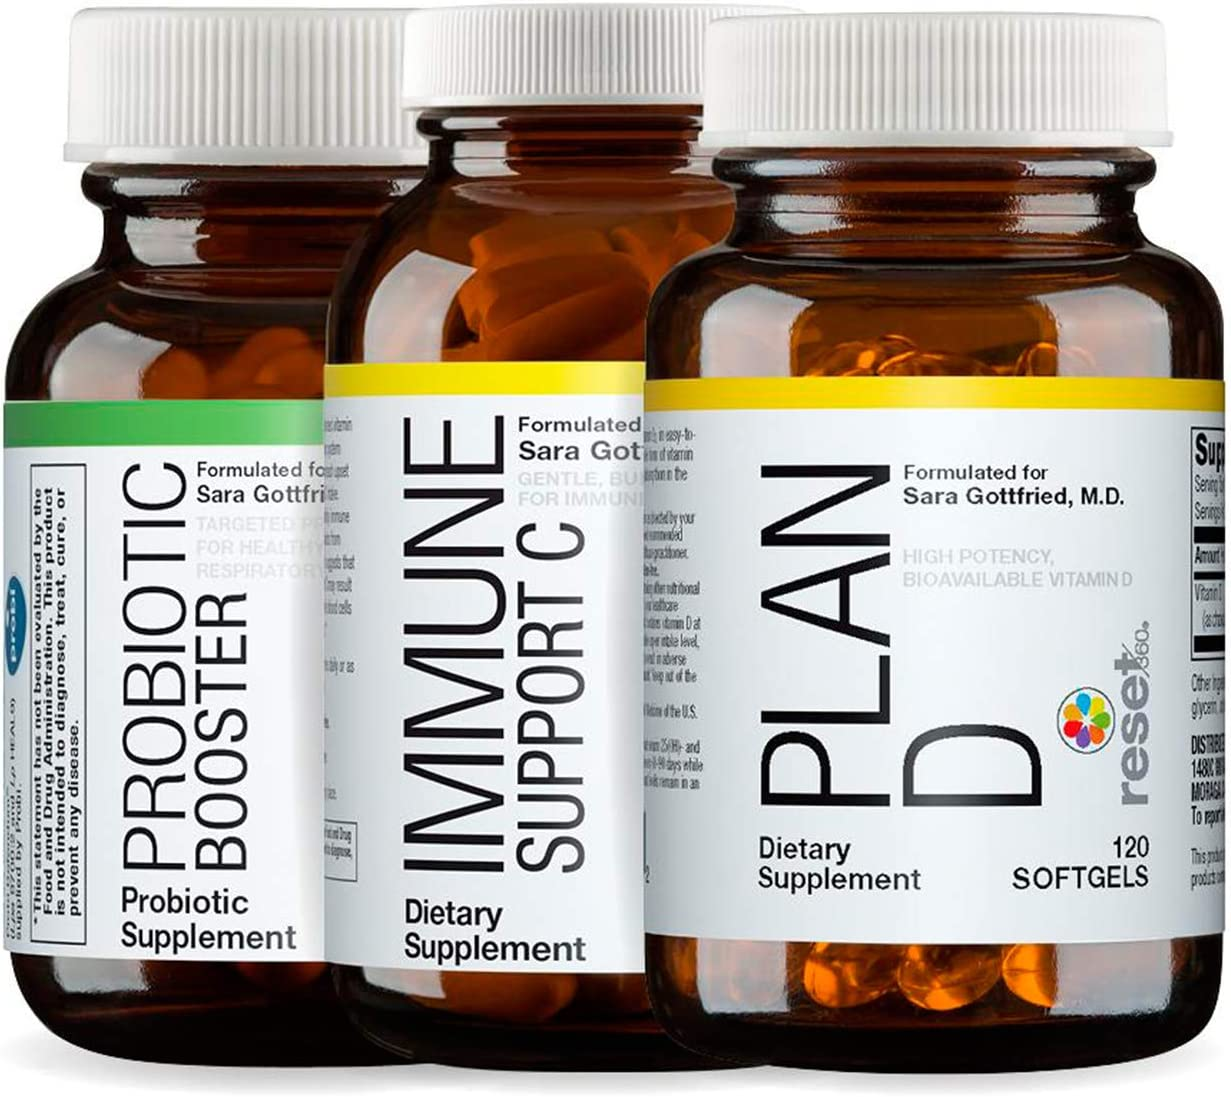 Reset360 Immune Support Kit Including Probiotic Booster Capsules, Immune Support Vitamin C Tablets, Plan D Vitamin D3 Soft Gel Supplements